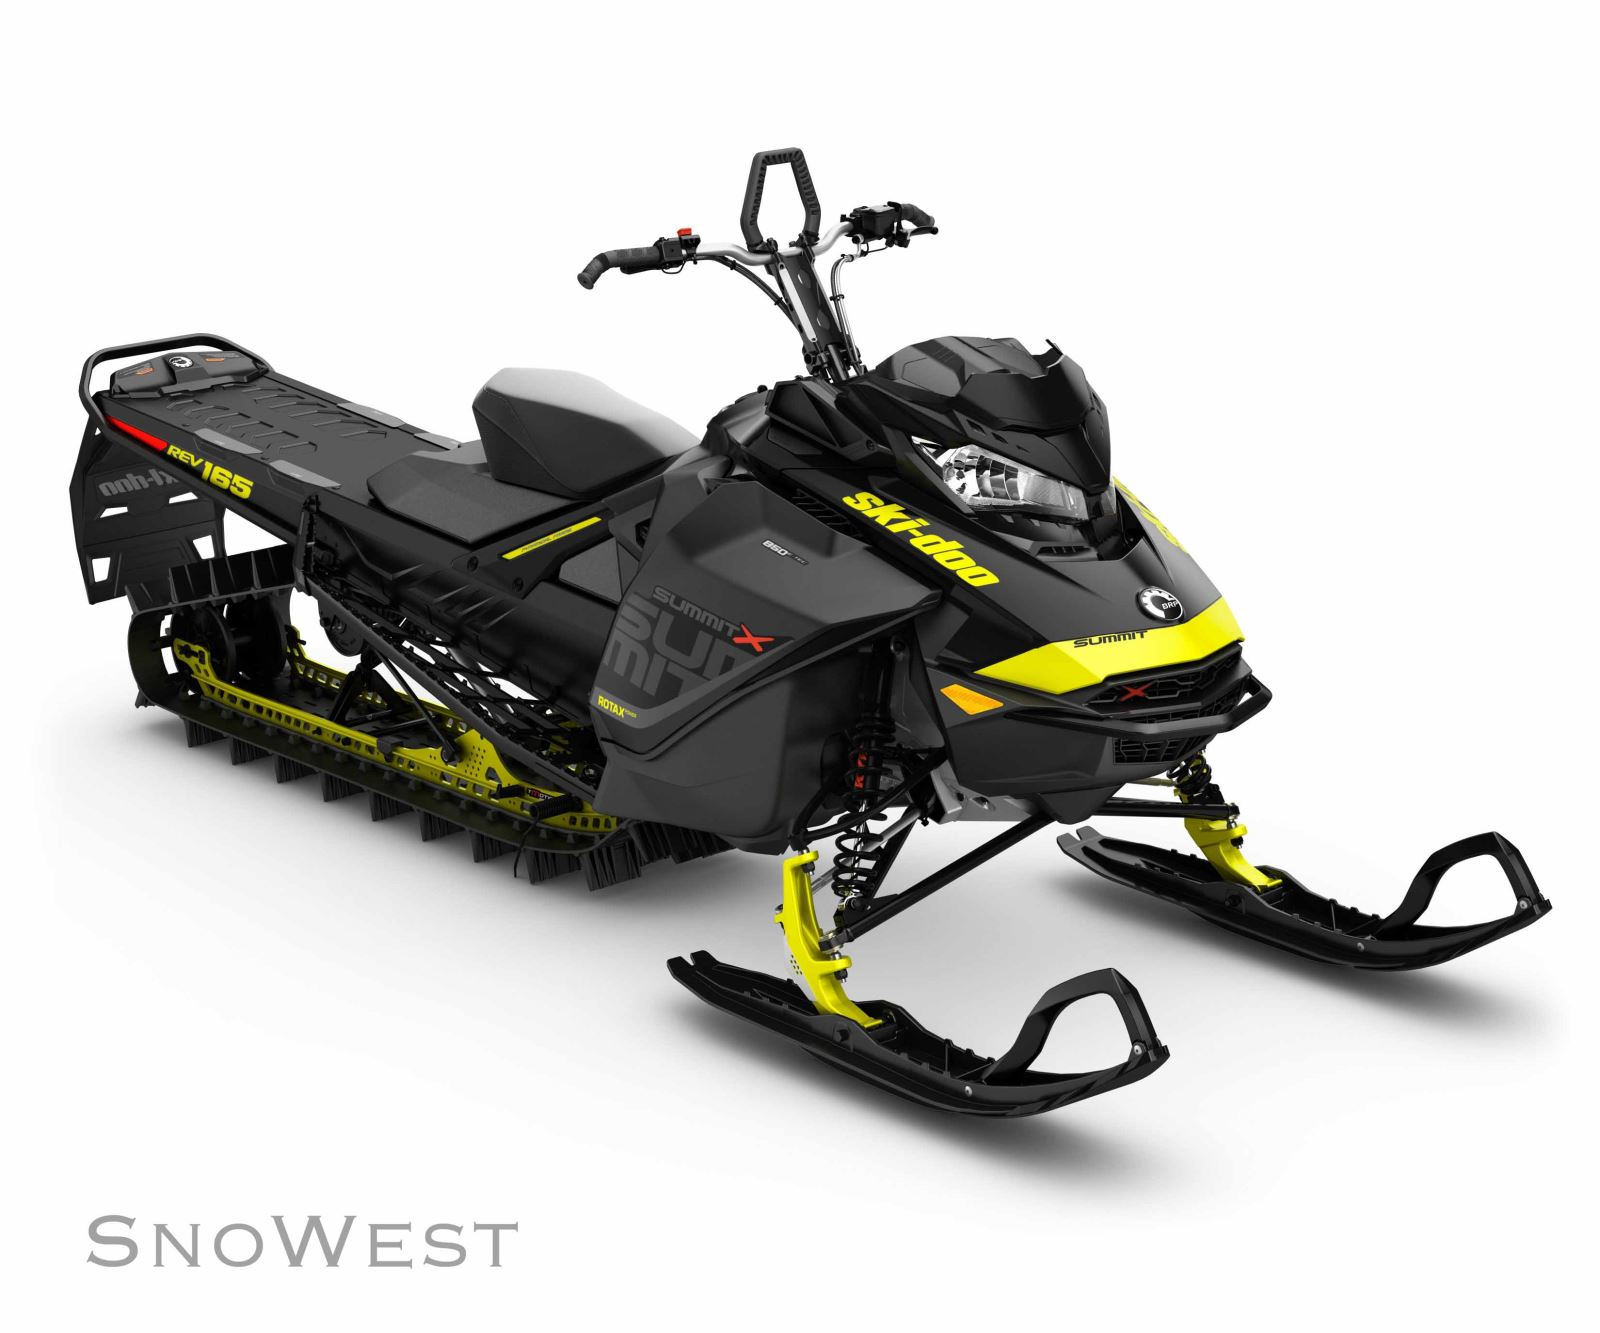 ski doo neu as - photo #6